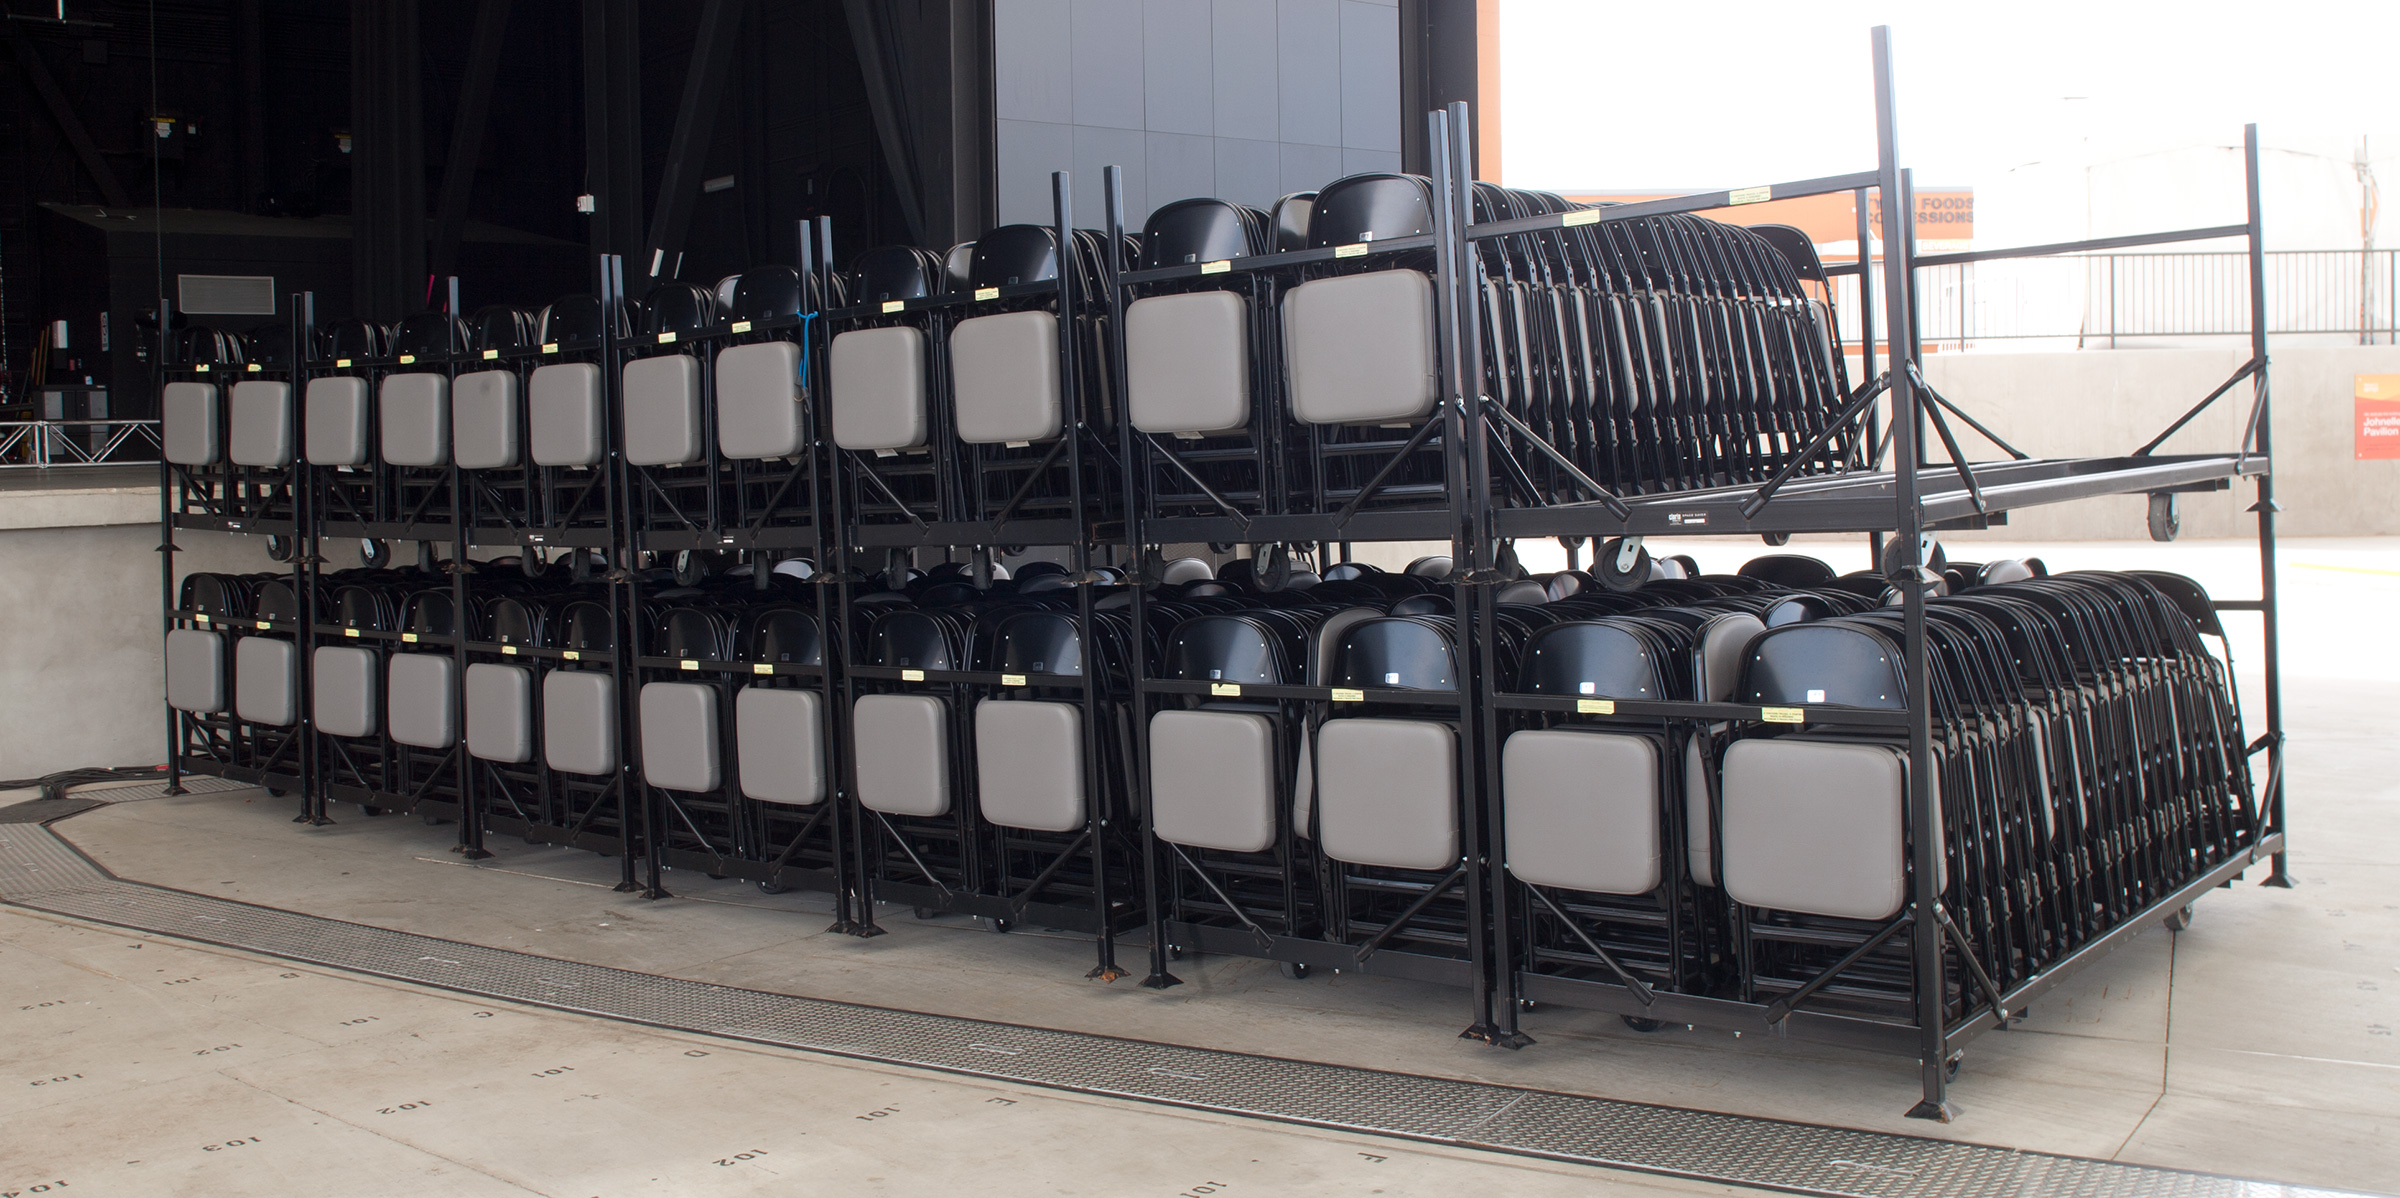 Carts Folding Portable Chairs For Any Venue Clarin Seating